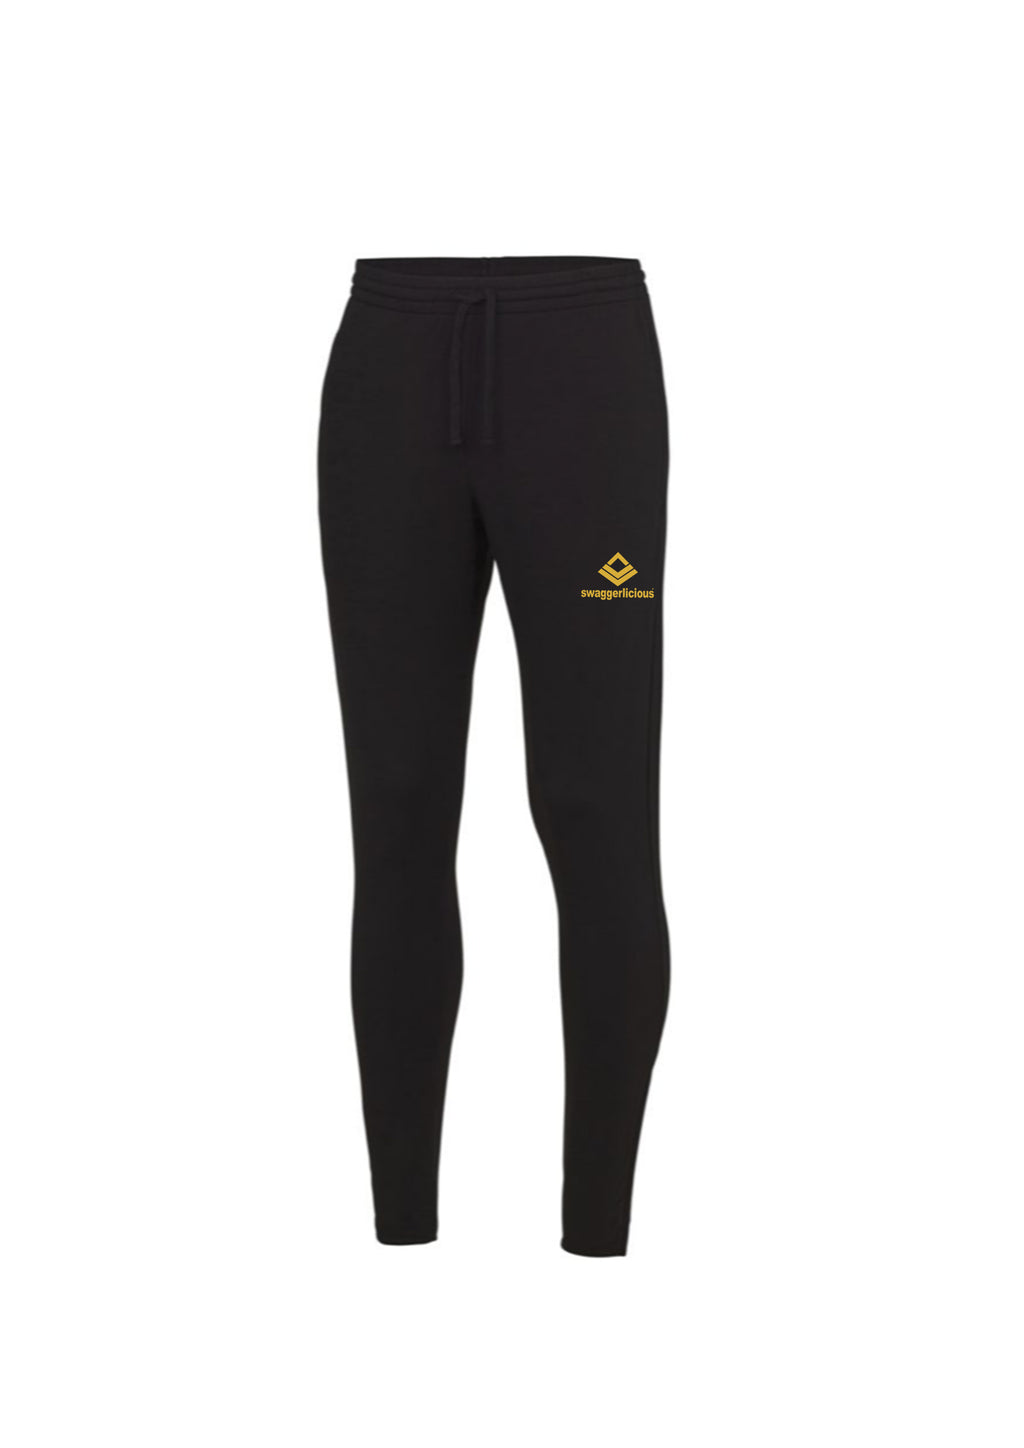 Swaggerlicious Cool Jet Black Jogging Pants with Gold Logo